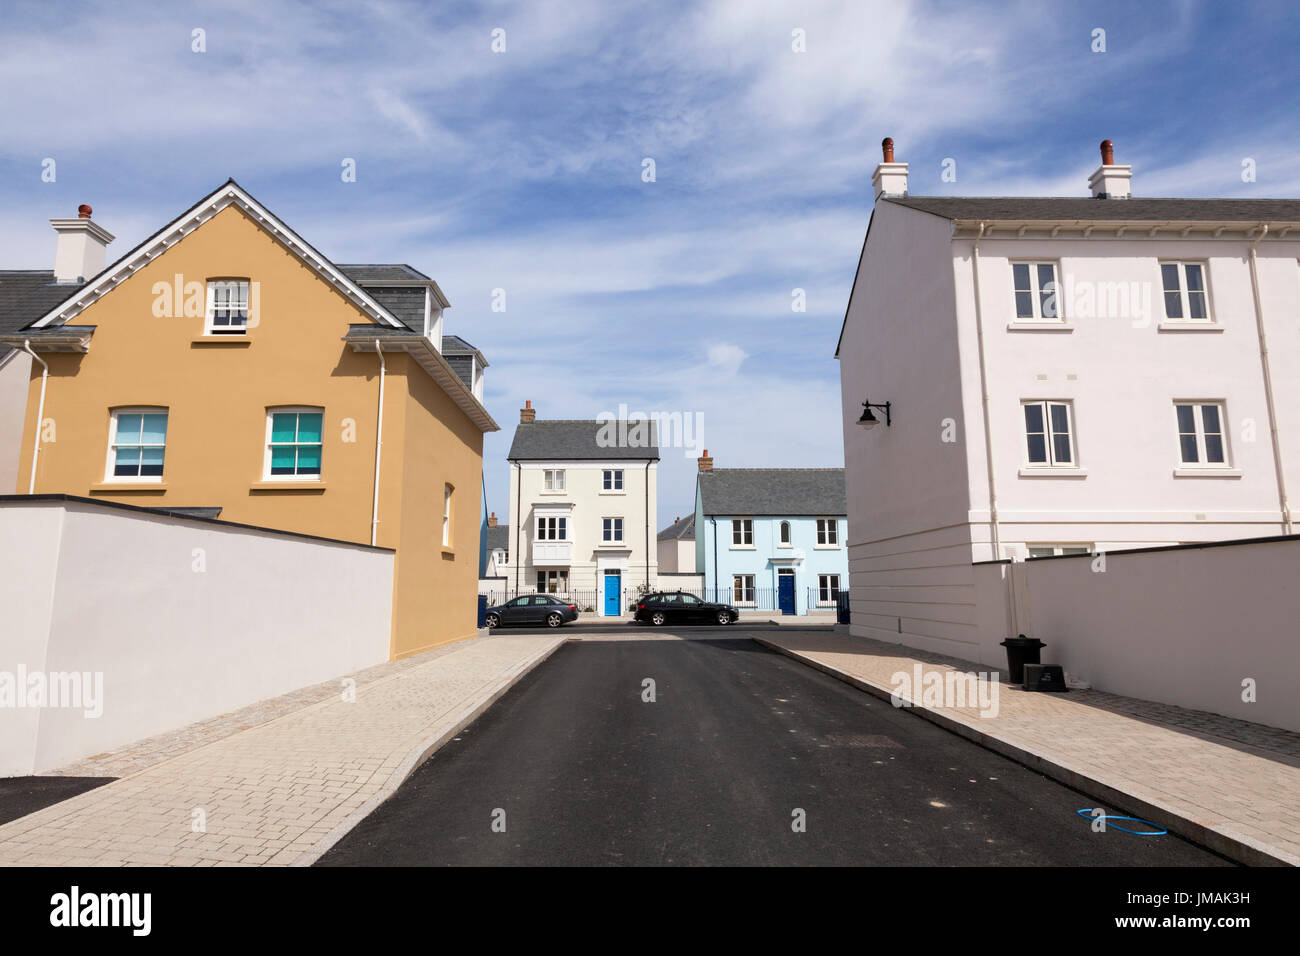 The collectors olivey place mylor bridge nr falmouth cornwall uk - Houses On The Nansledan 540 Acre New Build Housing Project At Newquay Cornwall Built